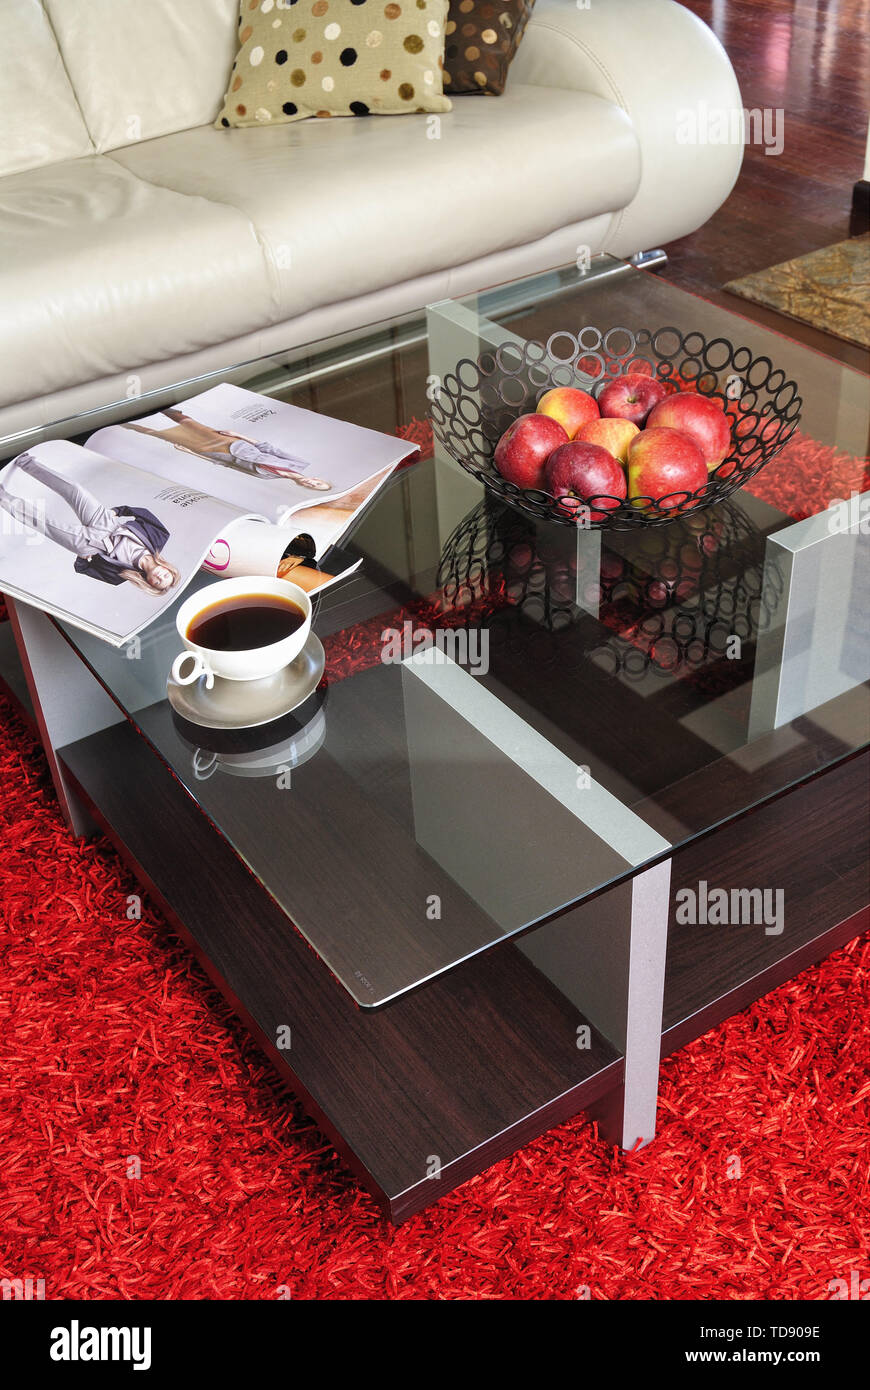 Cup Of Coffee And Apples In Wire Fruit Bowl On Glass Topped Coffee